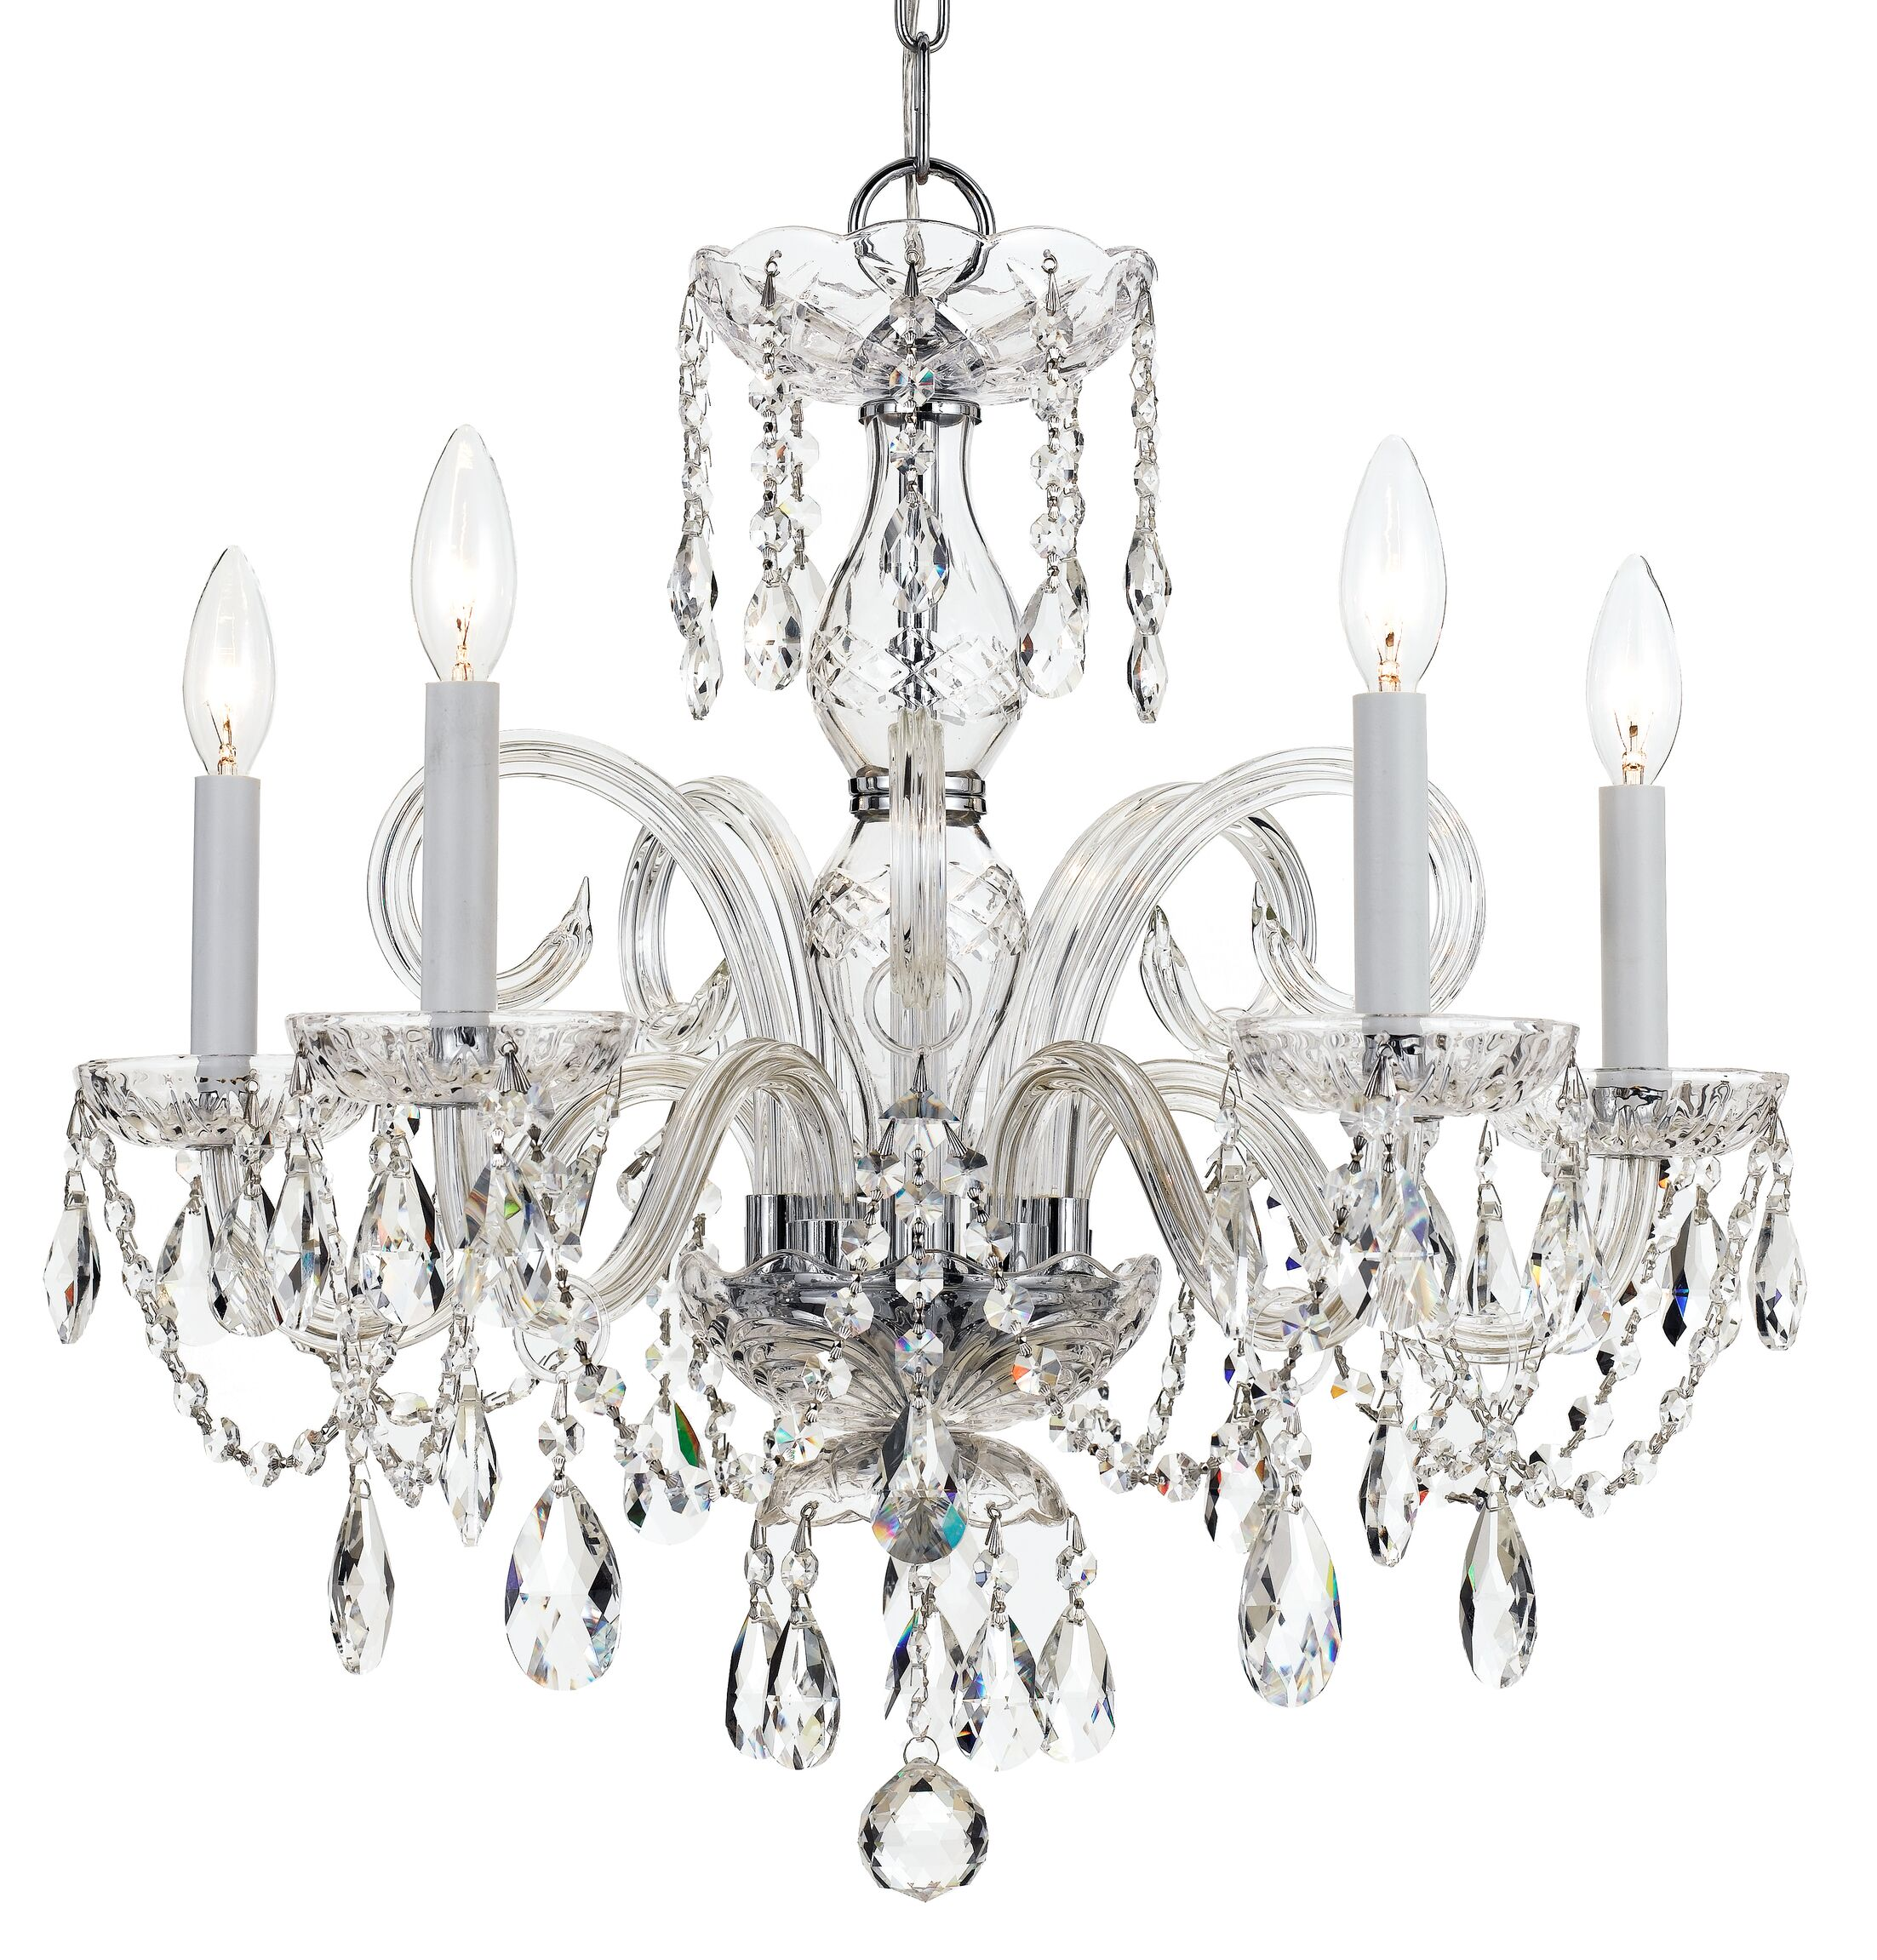 Careen 5-Light Glass Candle Style Chandelier Finish: Polished Chrome, Crystal: Swarovski Strass